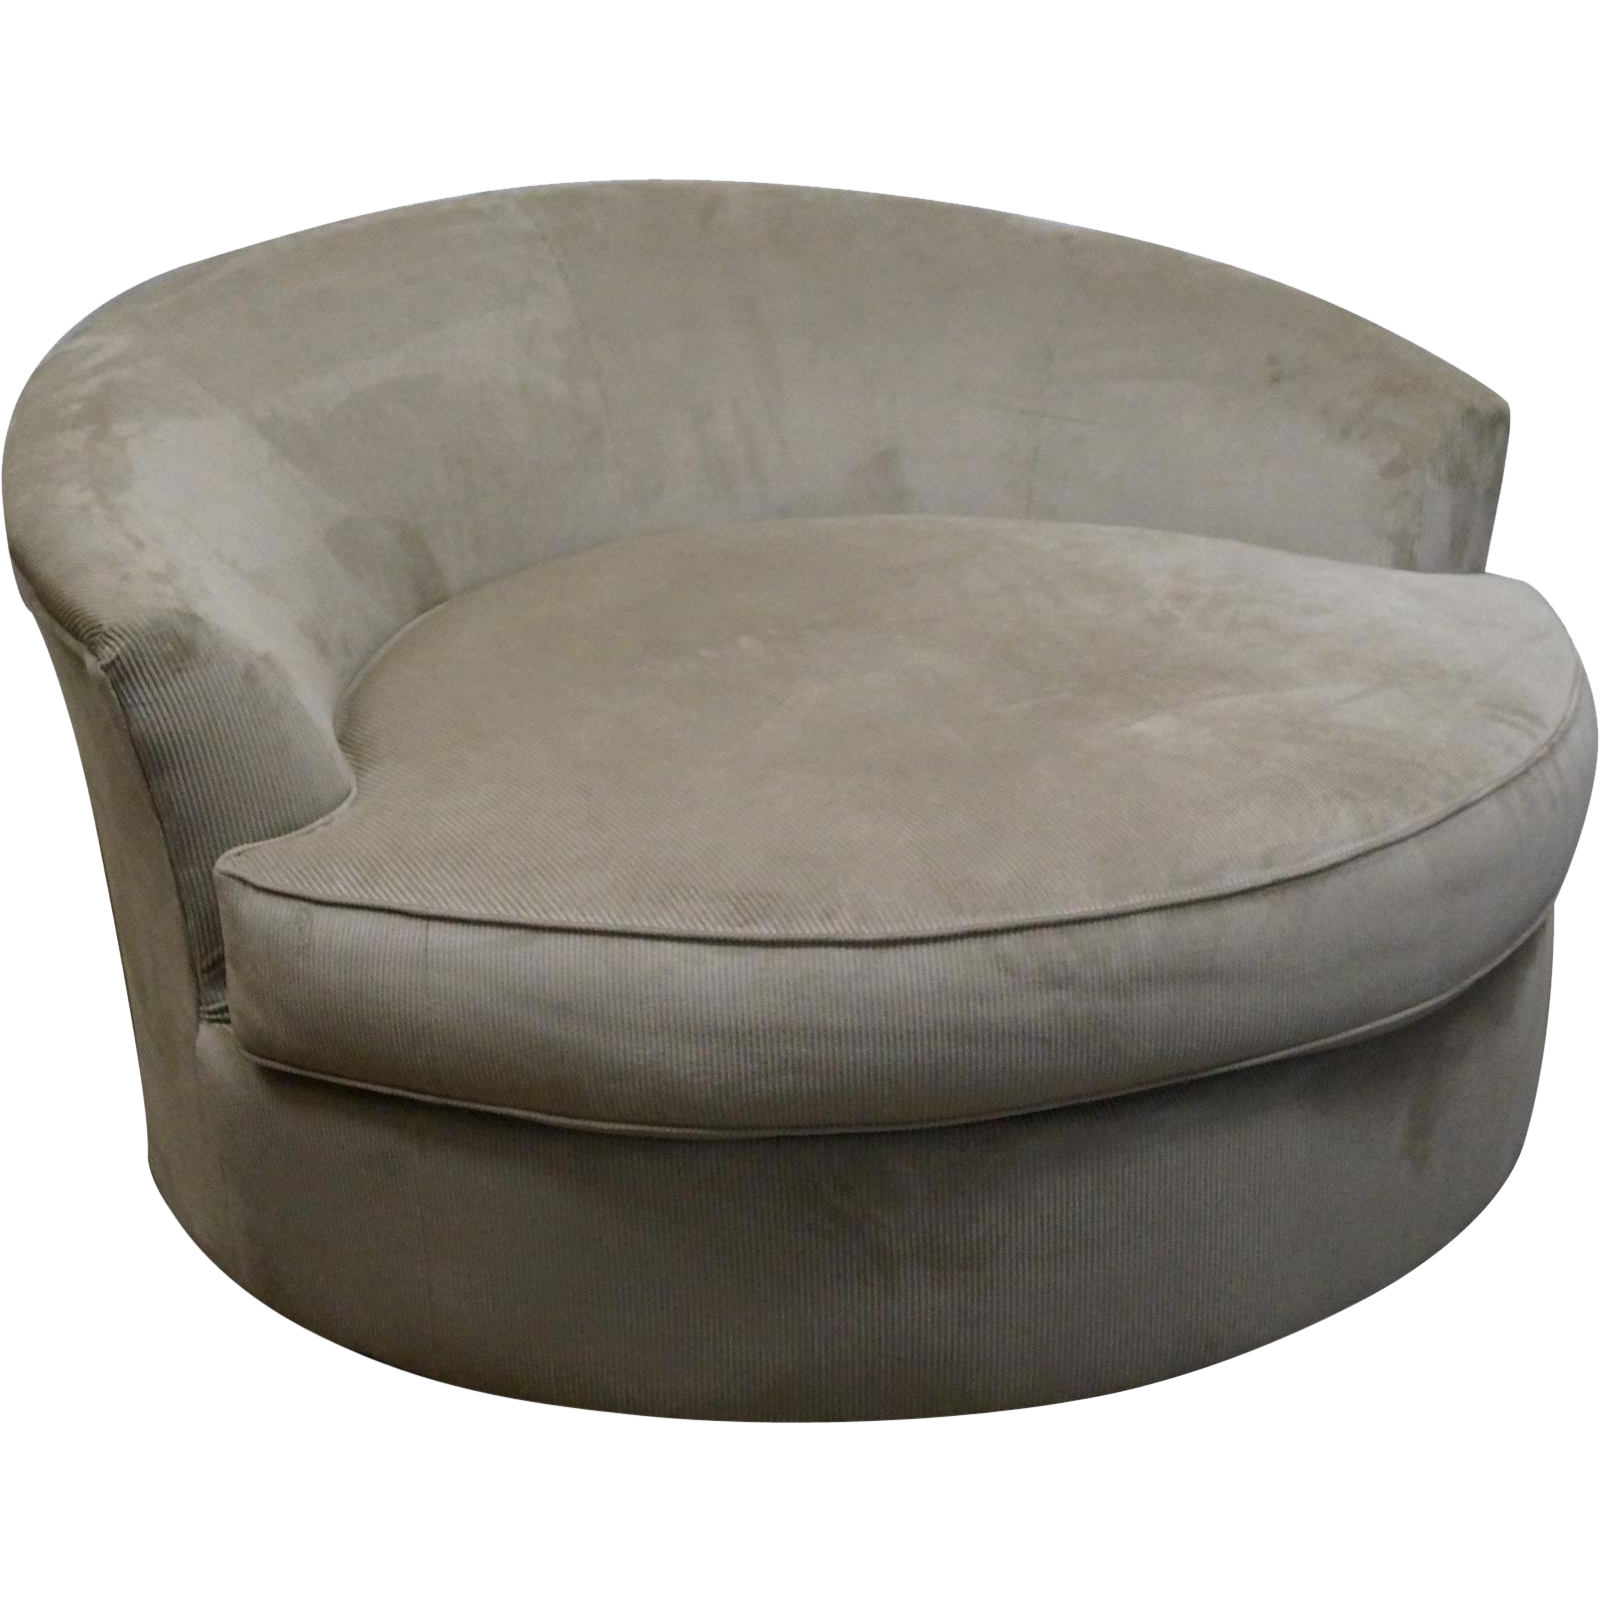 Round Swivel Chairs Home Design